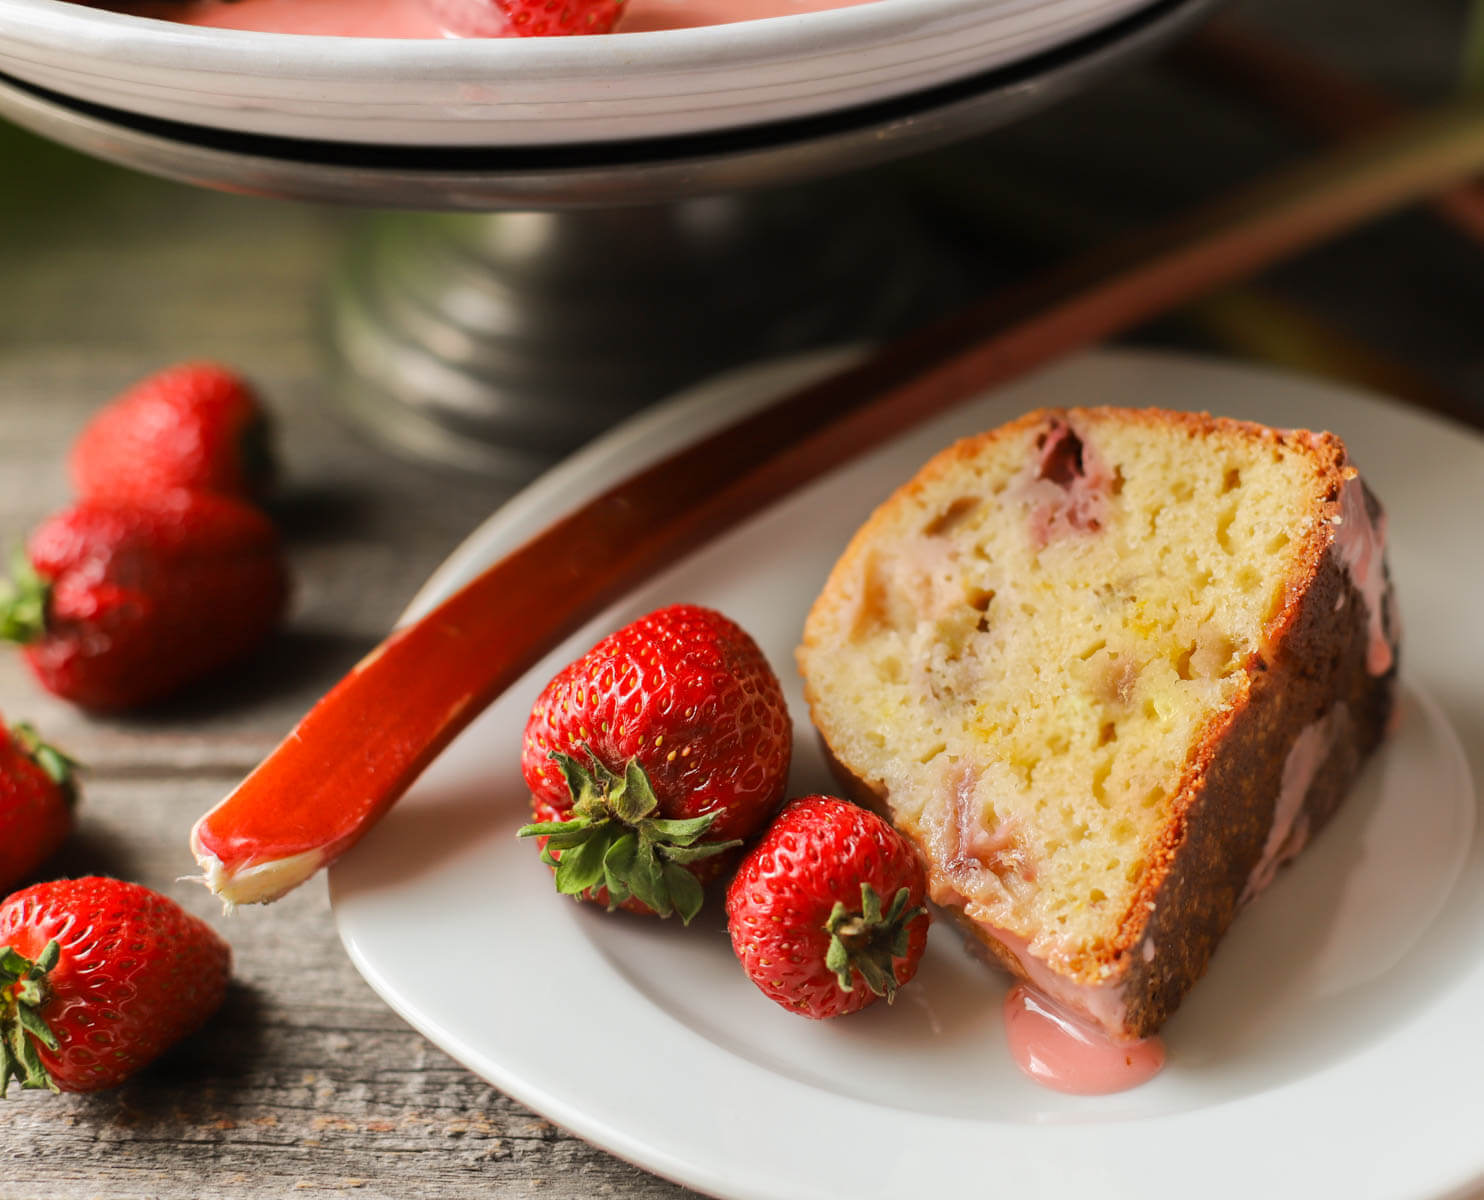 A slice of strawberry rhubarb Greek yogurt cake with strawberries.